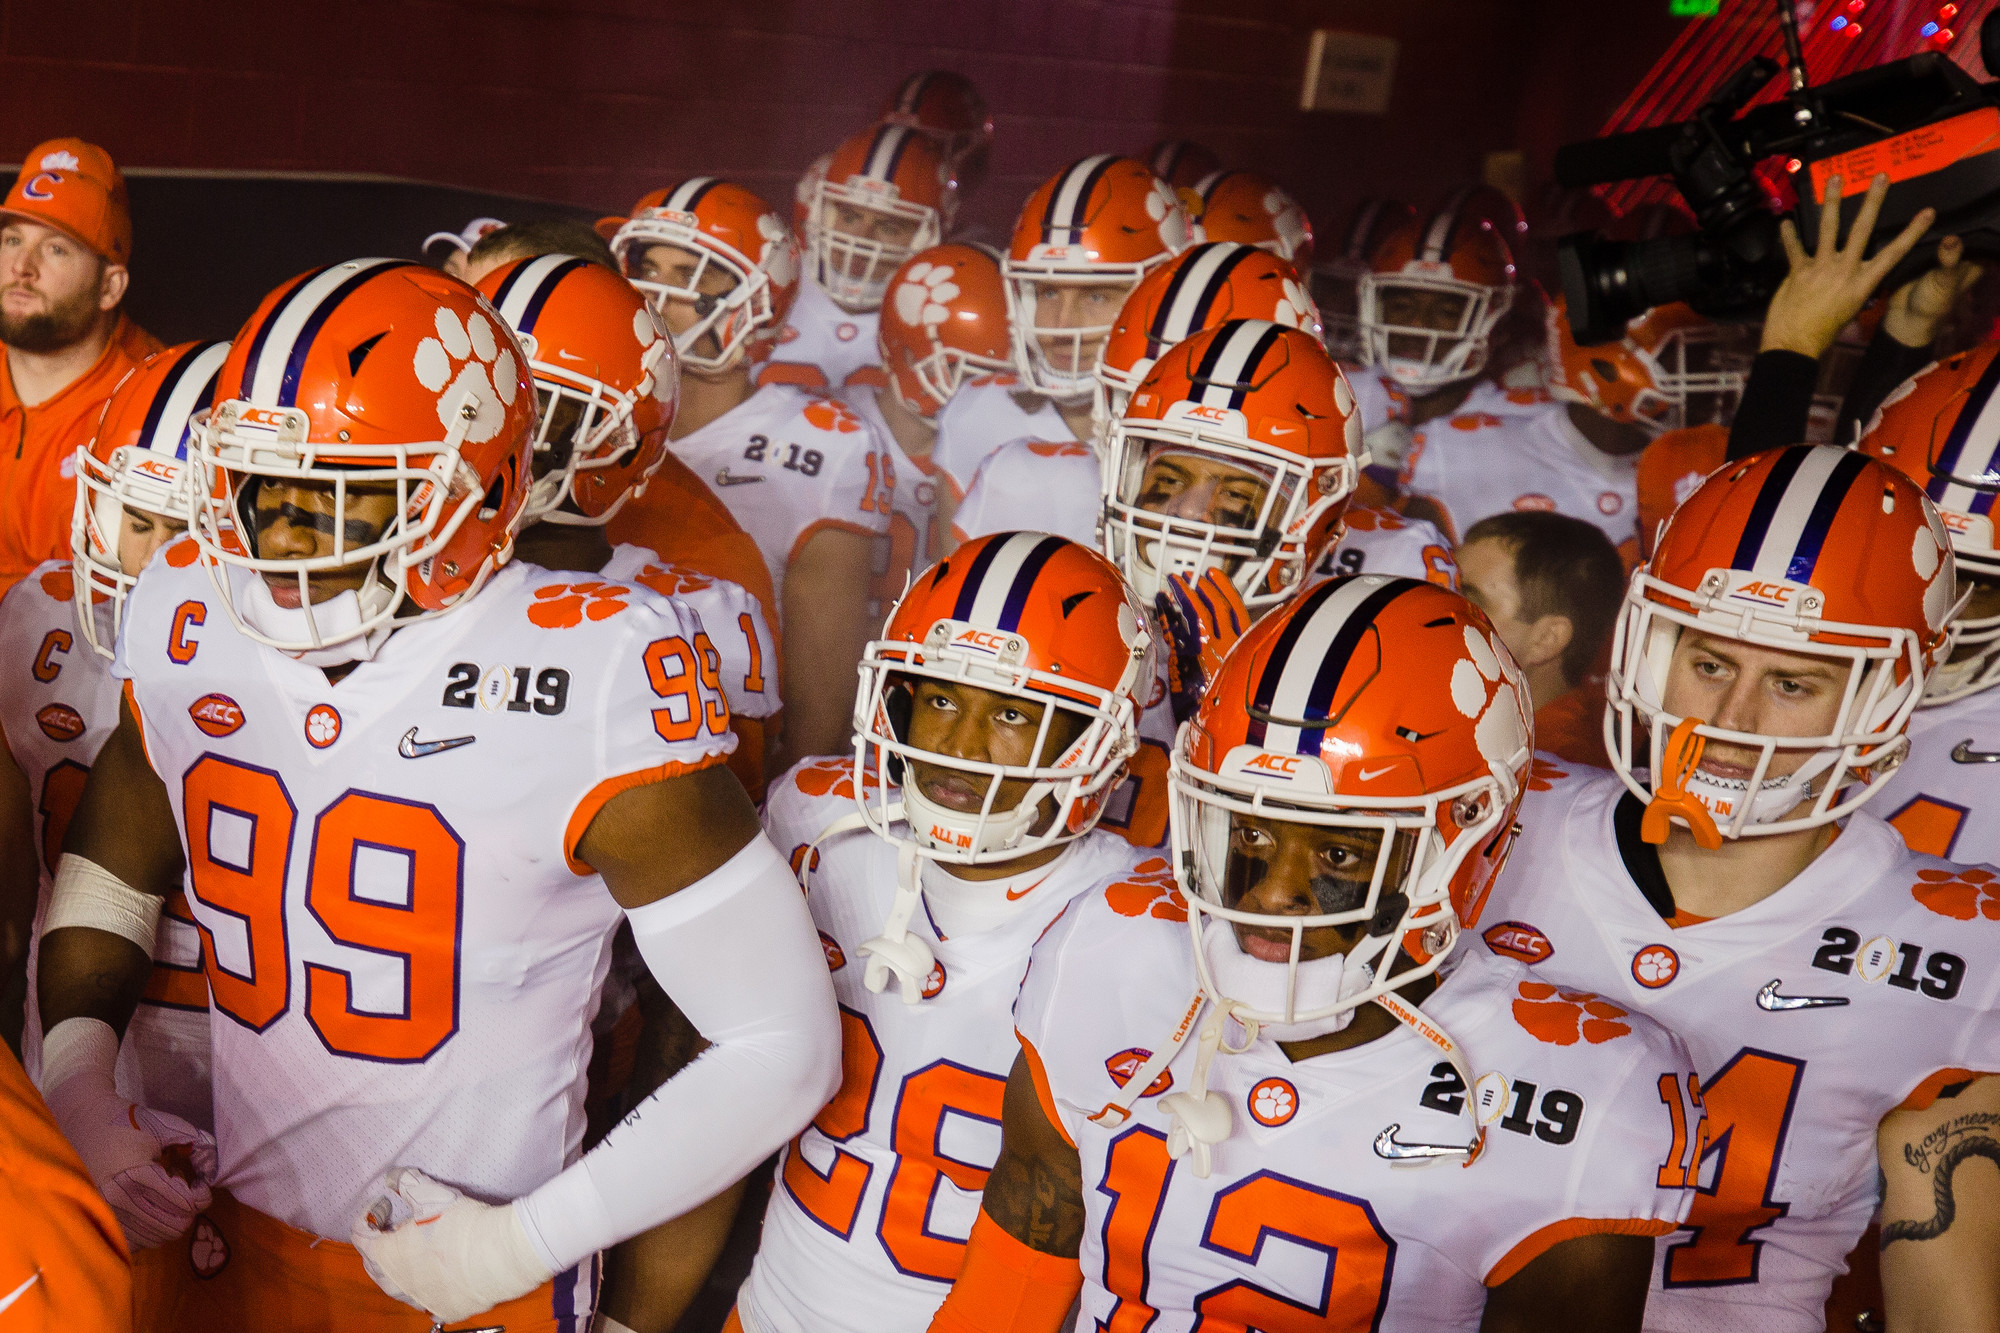 Clemson players get ready to exit the tunnel to start the 2019 CFP National Championship at Levi's Stadium in Santa Clara, California, on Monday, Jan. 7. The Tigers routed Alabama to win 44-16.